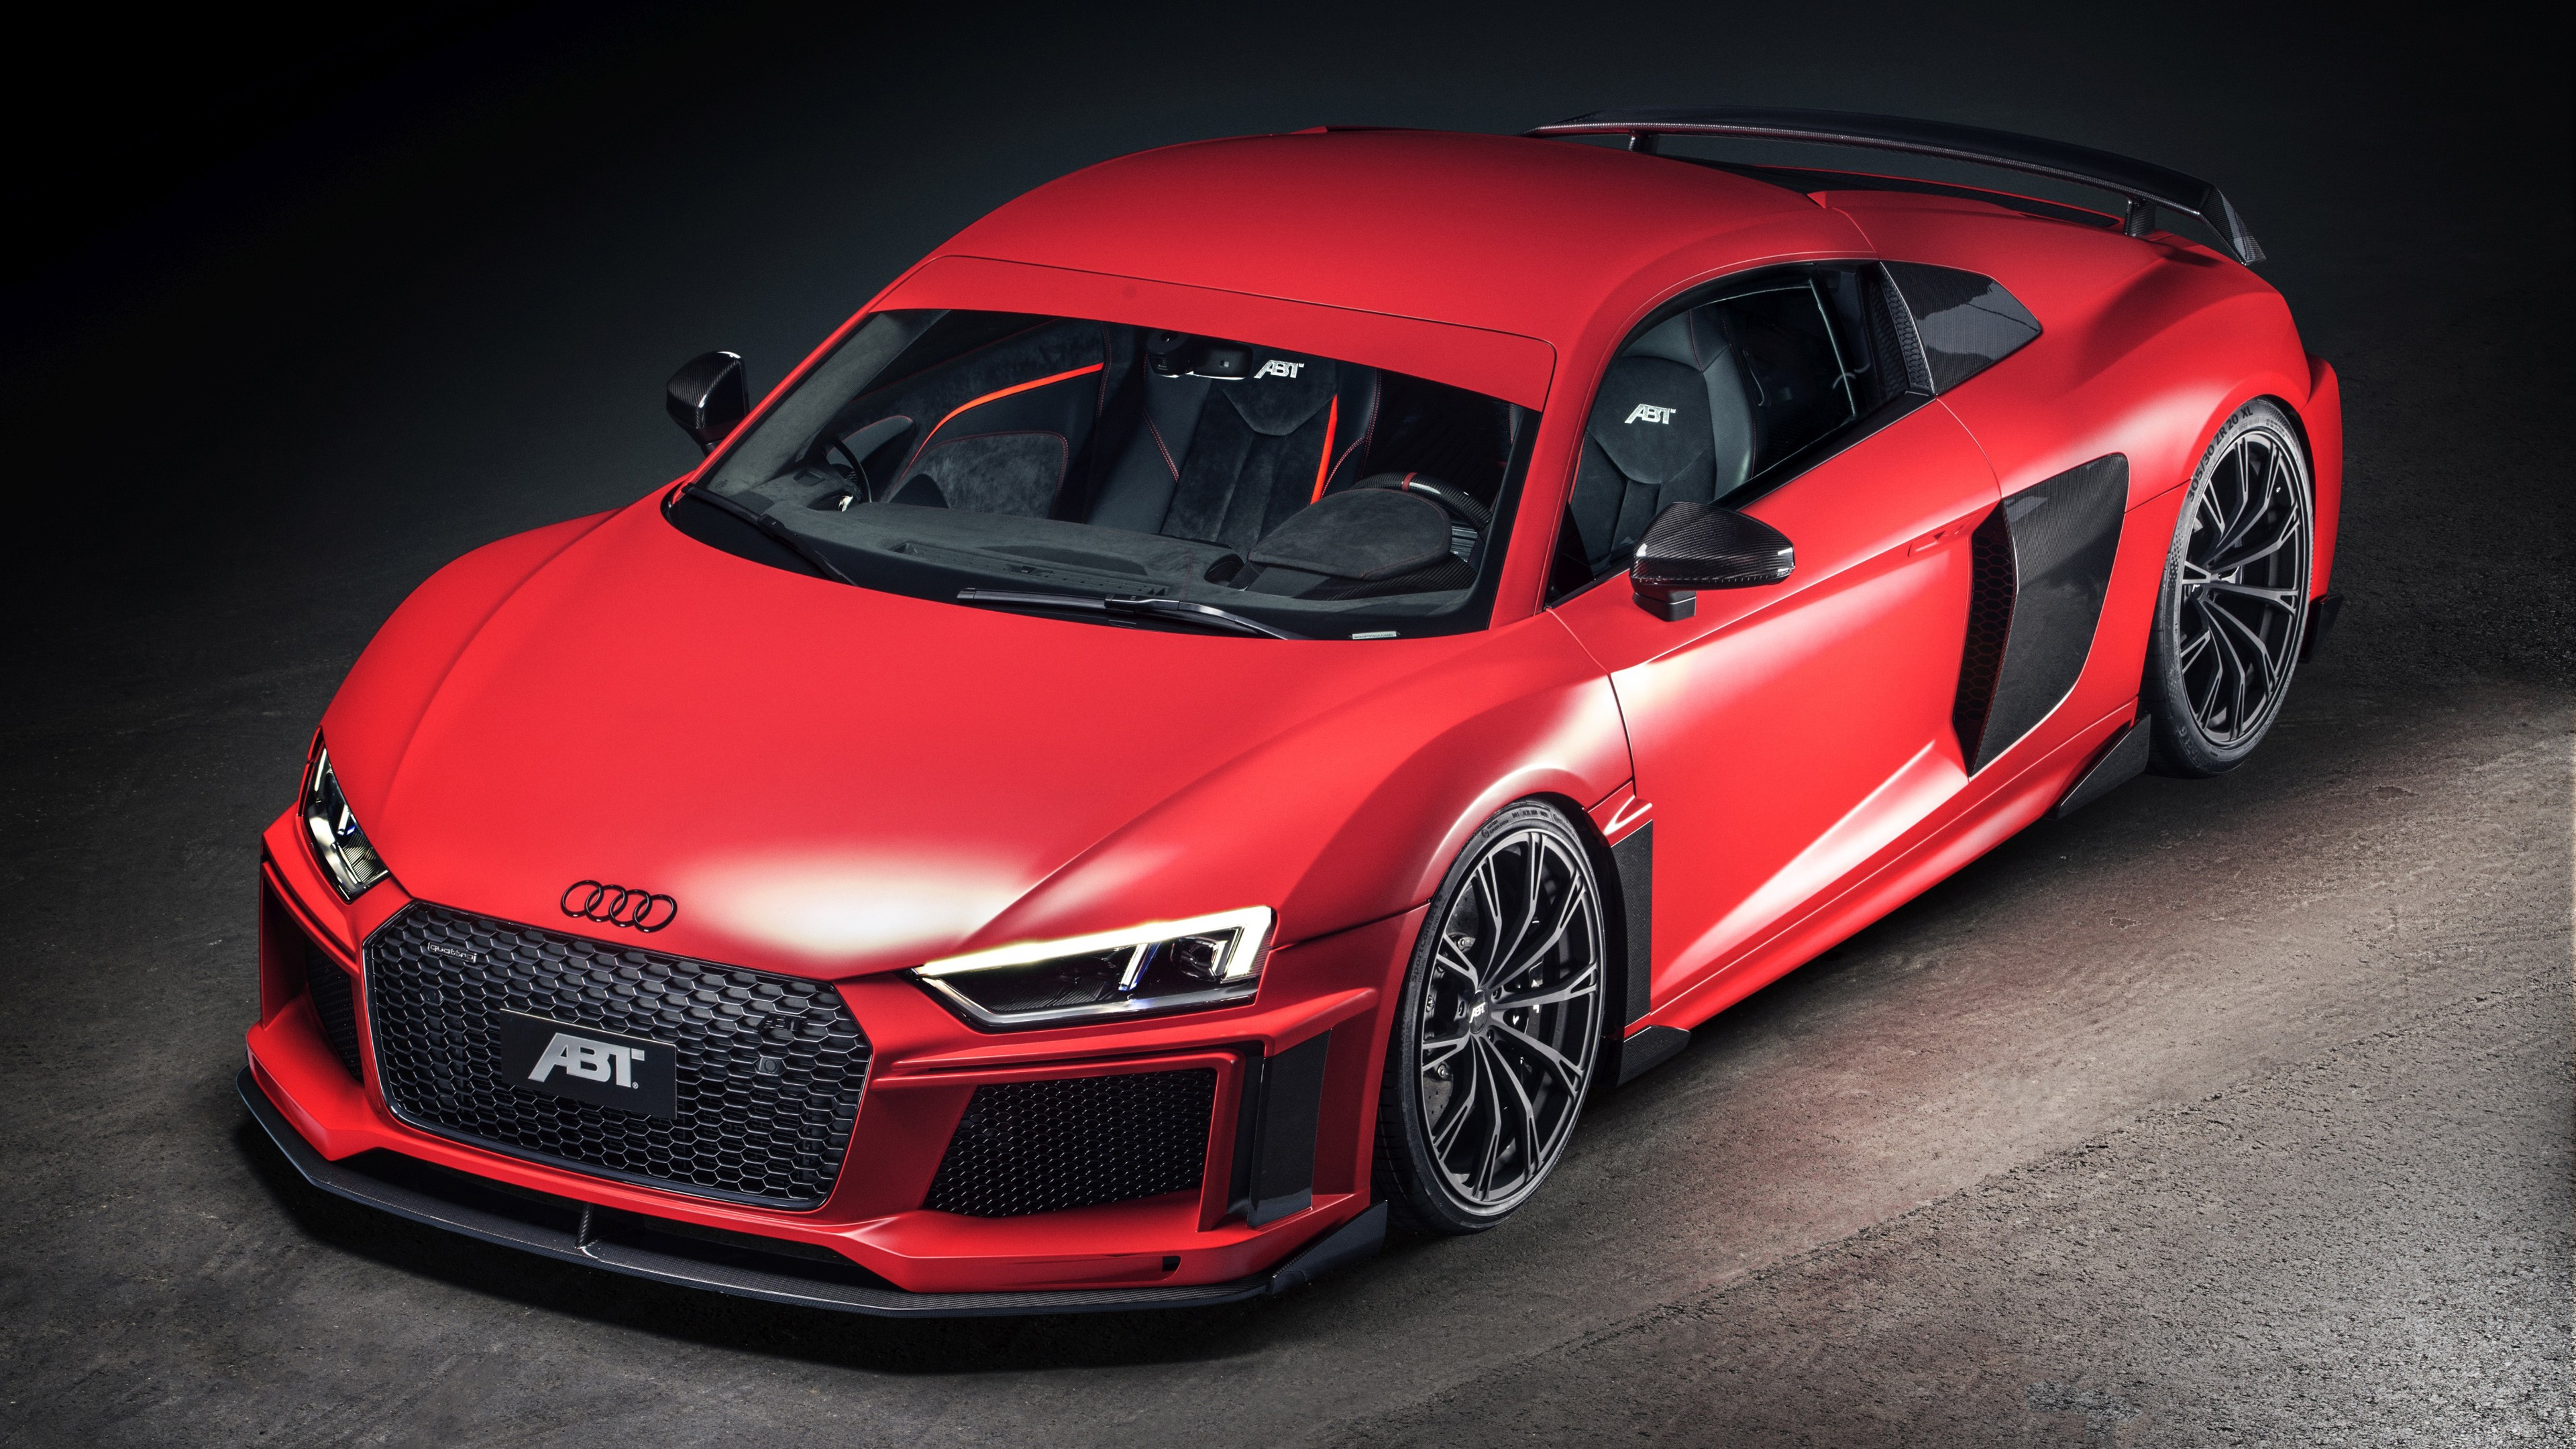 Audi ABT Red and Carbon без смс